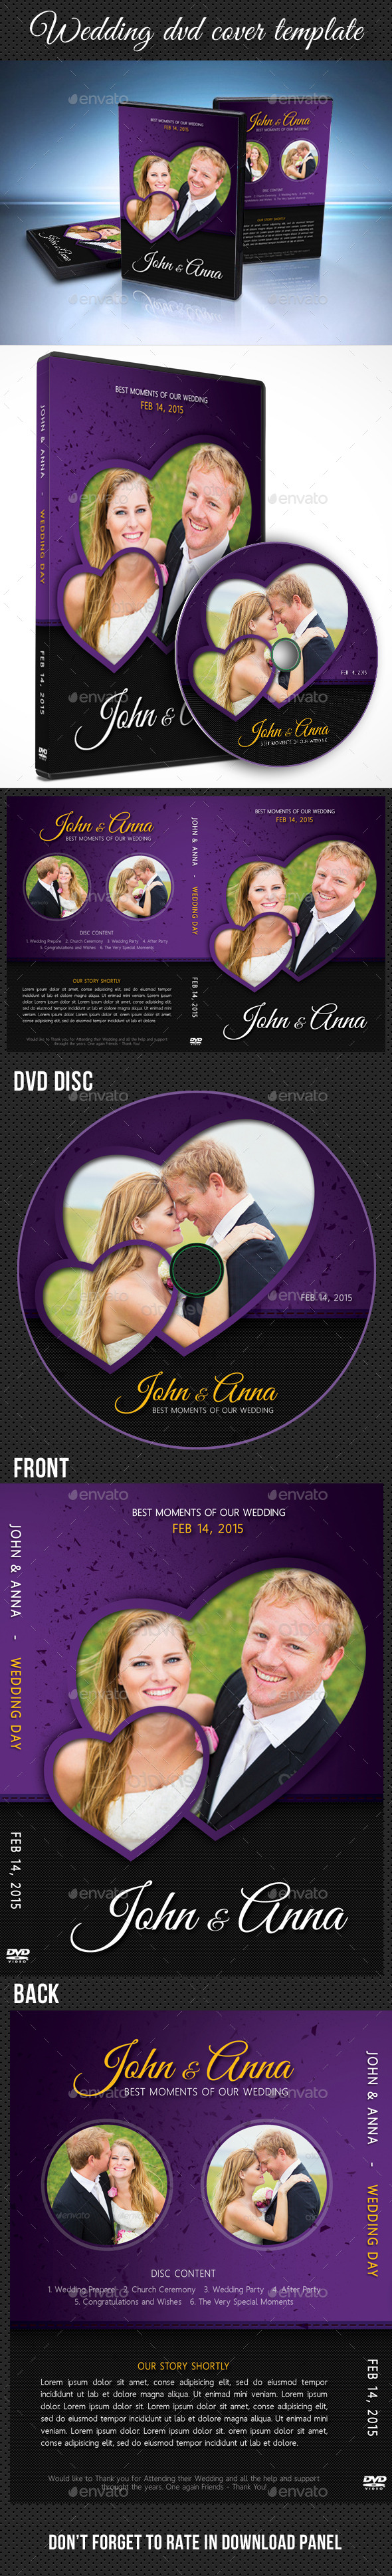 GraphicRiver Wedding DVD Cover Template 12 10218617